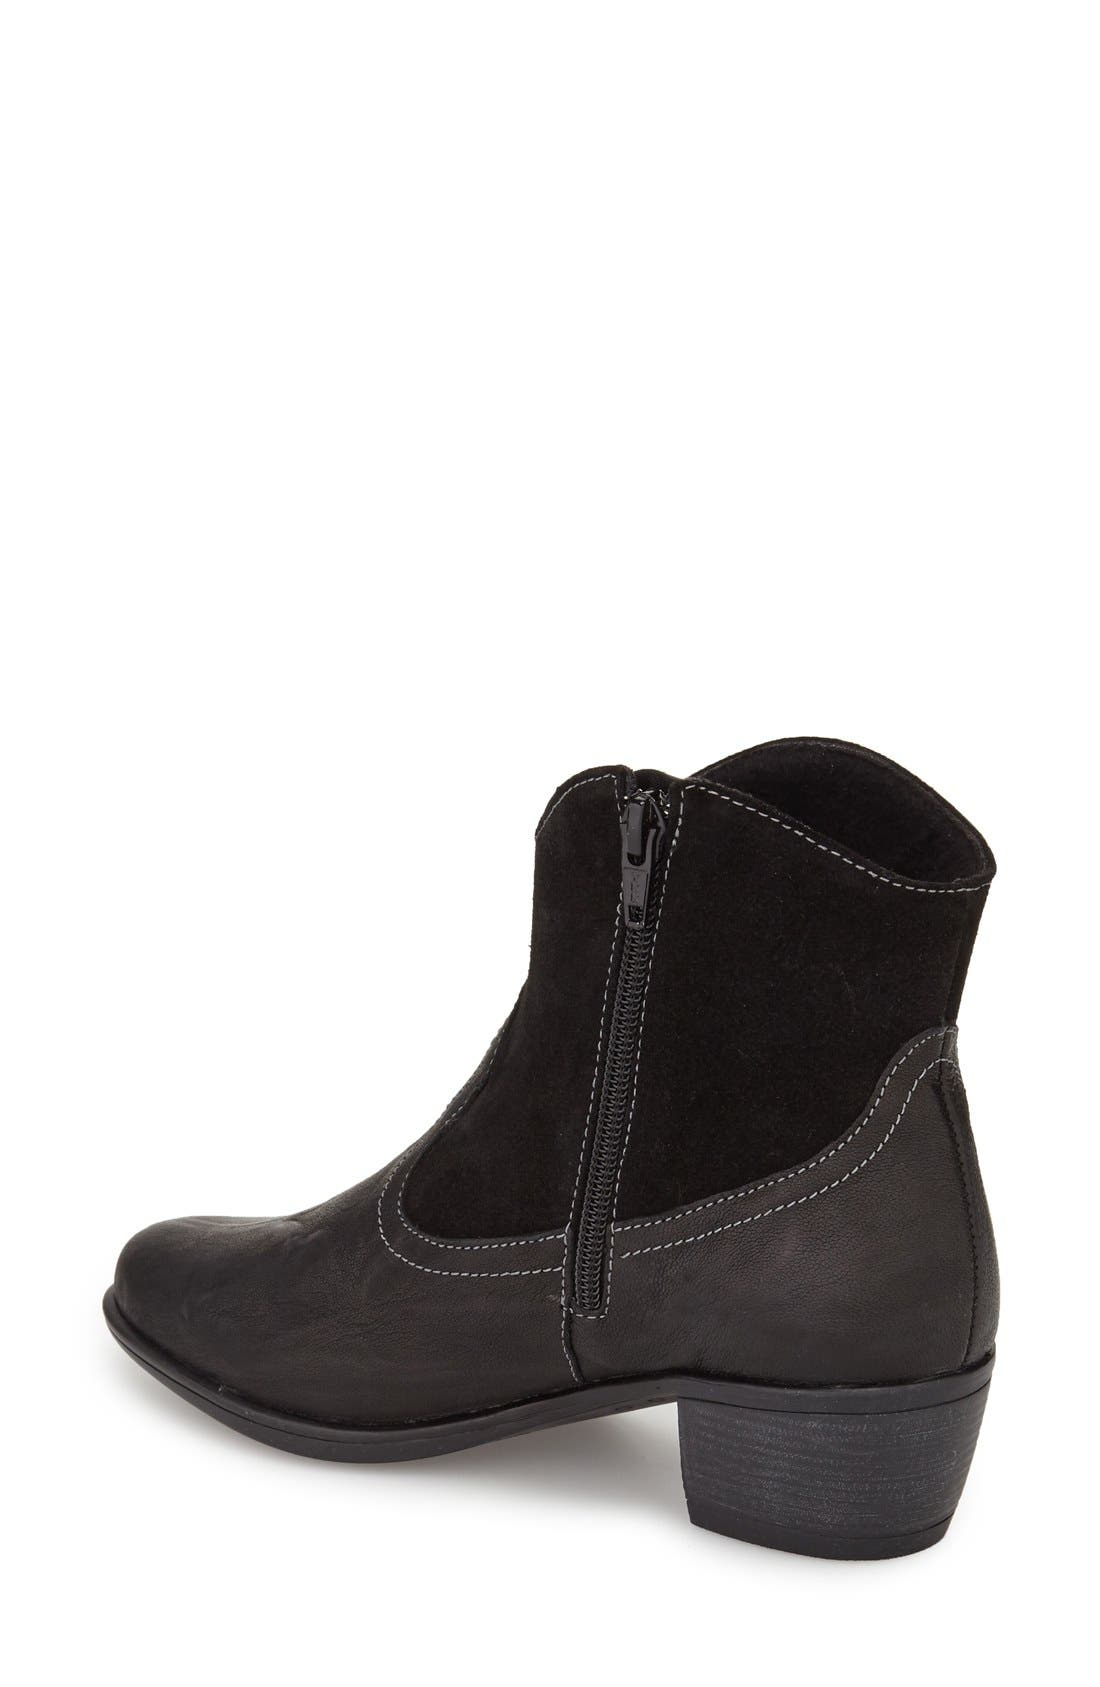 Laramie Bootie,                             Alternate thumbnail 2, color,                             BLACK LEATHER